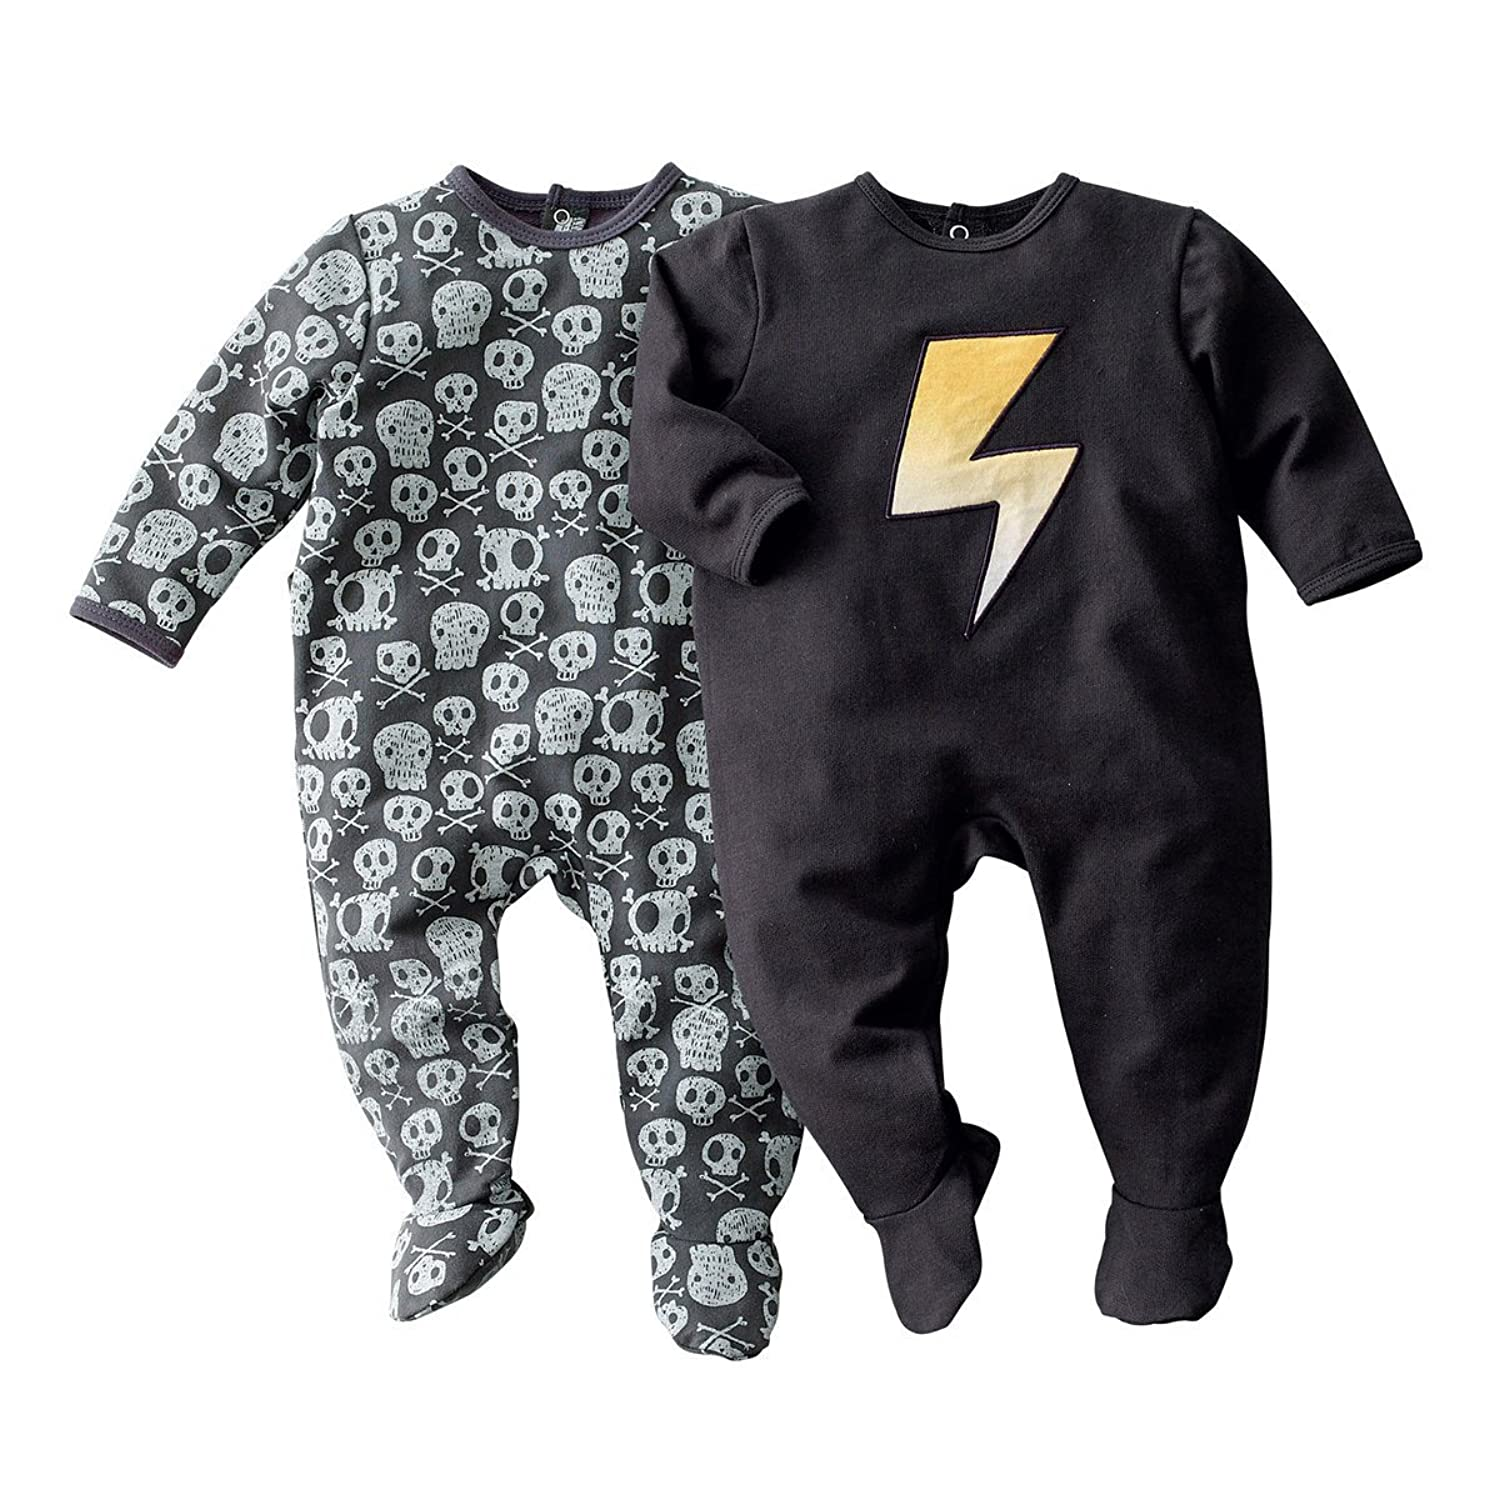 R Baby Little Boys Pack Of 2 Fleece Sleepsuits With Feet